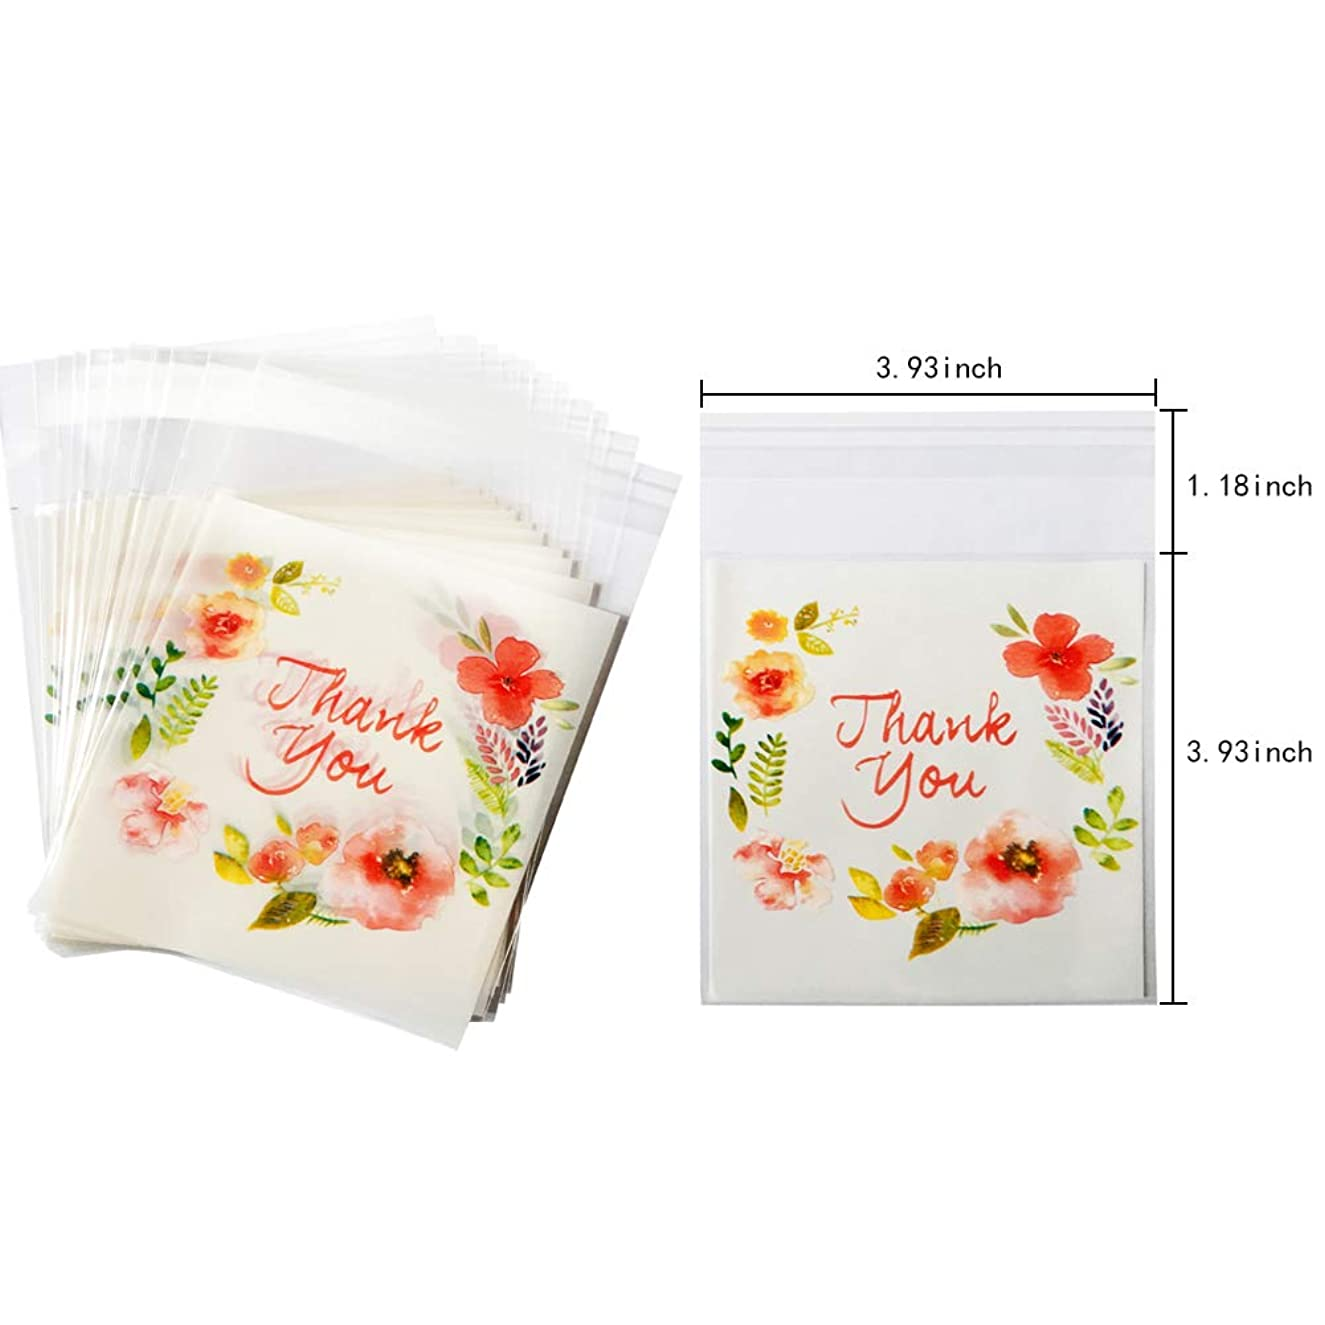 Thank You Cellophane Pink Flower Plastic Pack Candy Cookie Bags Self Adhesive Bags 200 Pcs(3.93x3.93+1.18 Inch)